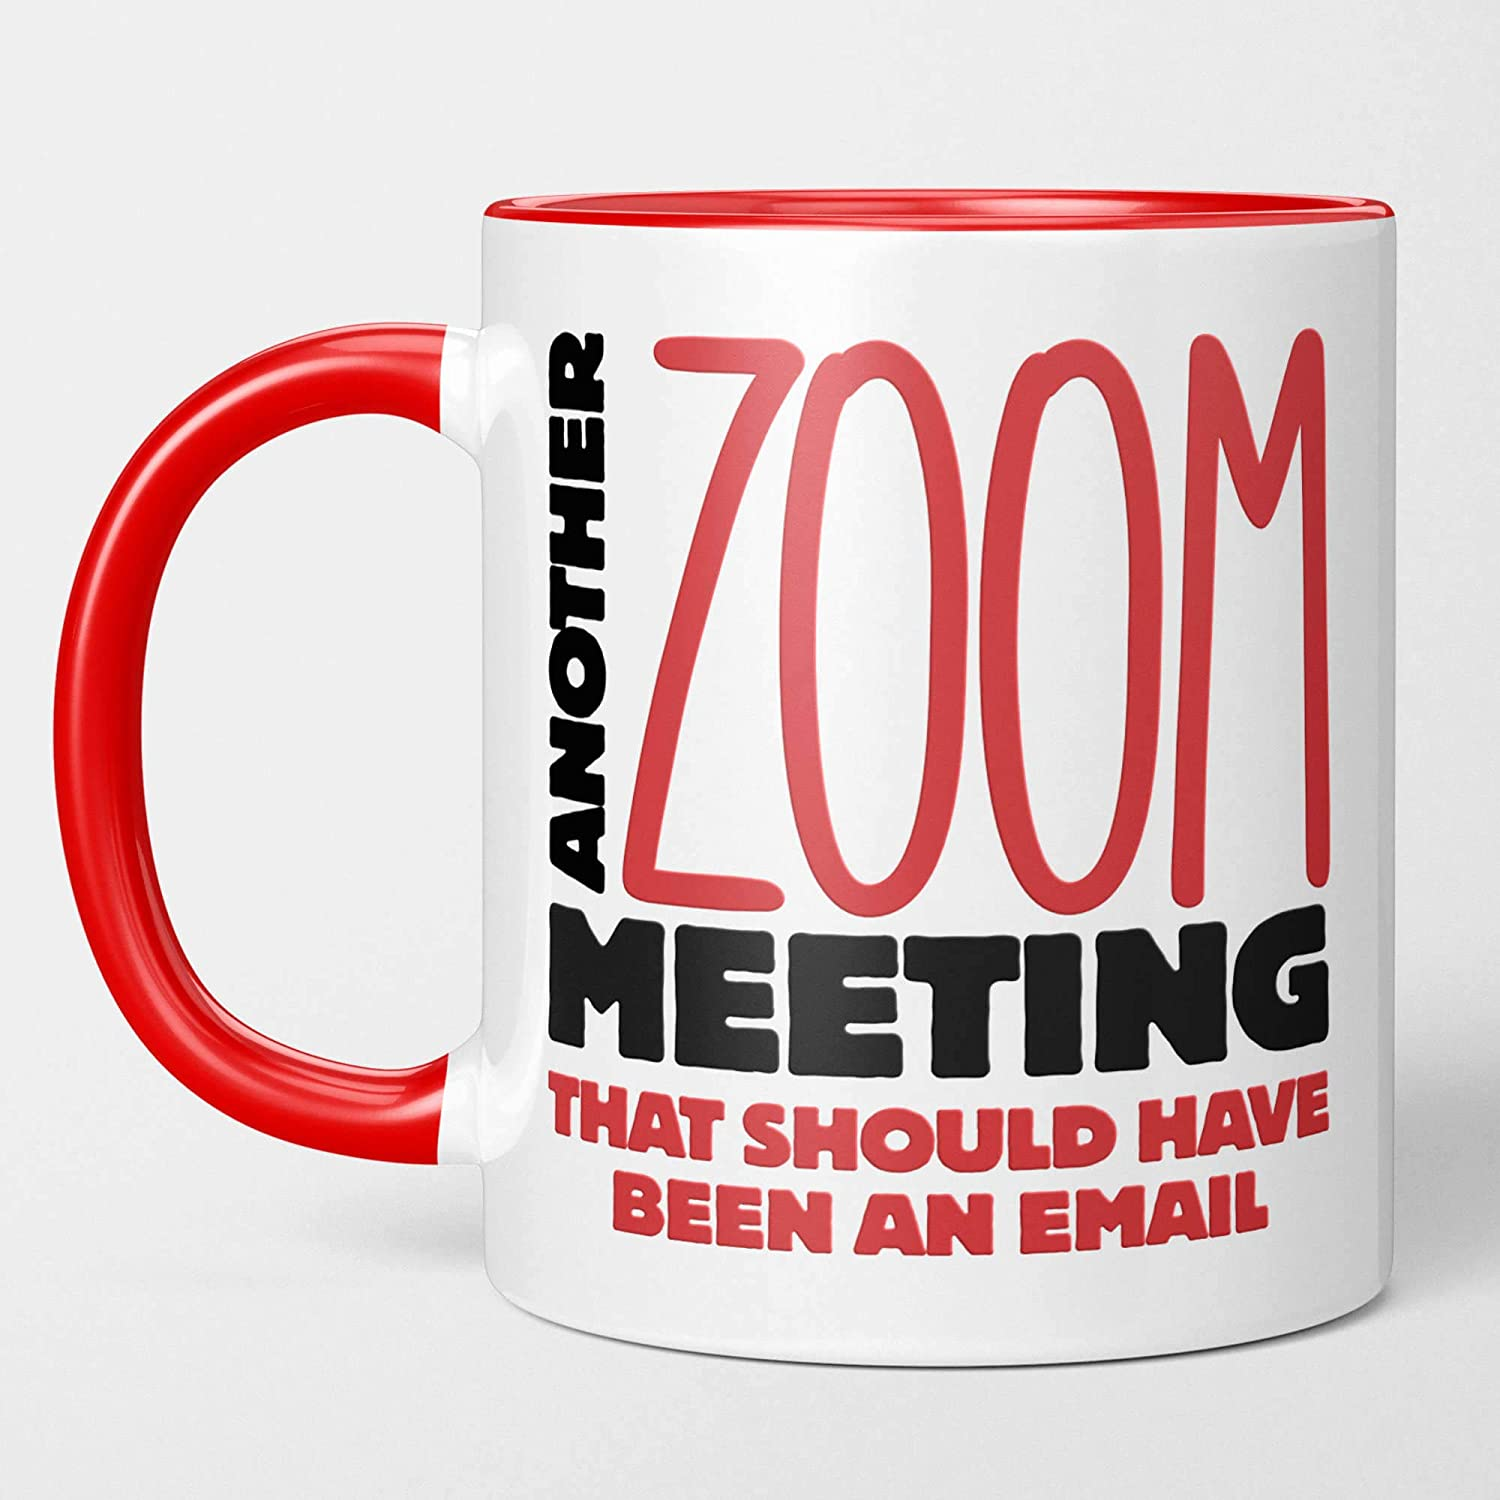 Watermelonheads Another Zoom Meeting That Should Have Been an Email, 11oz Funny Coffee Mug, Tea Cup With Sayings, Quarantine Survivor Gift for Home Office Remote Workers Husband Wife Coworkers